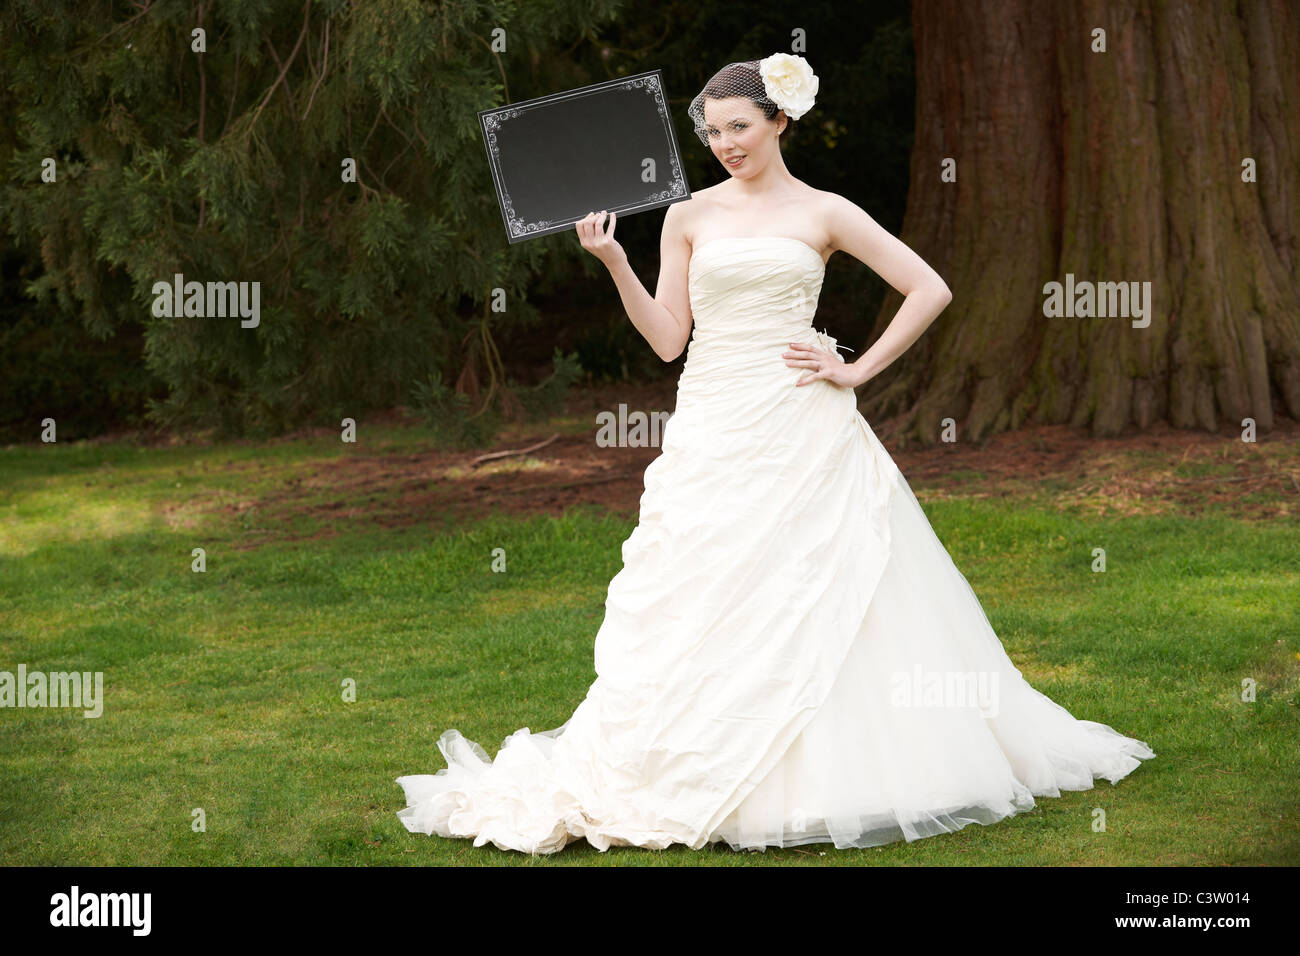 Pretty bride in wedding dress holding a blank board with space for ...